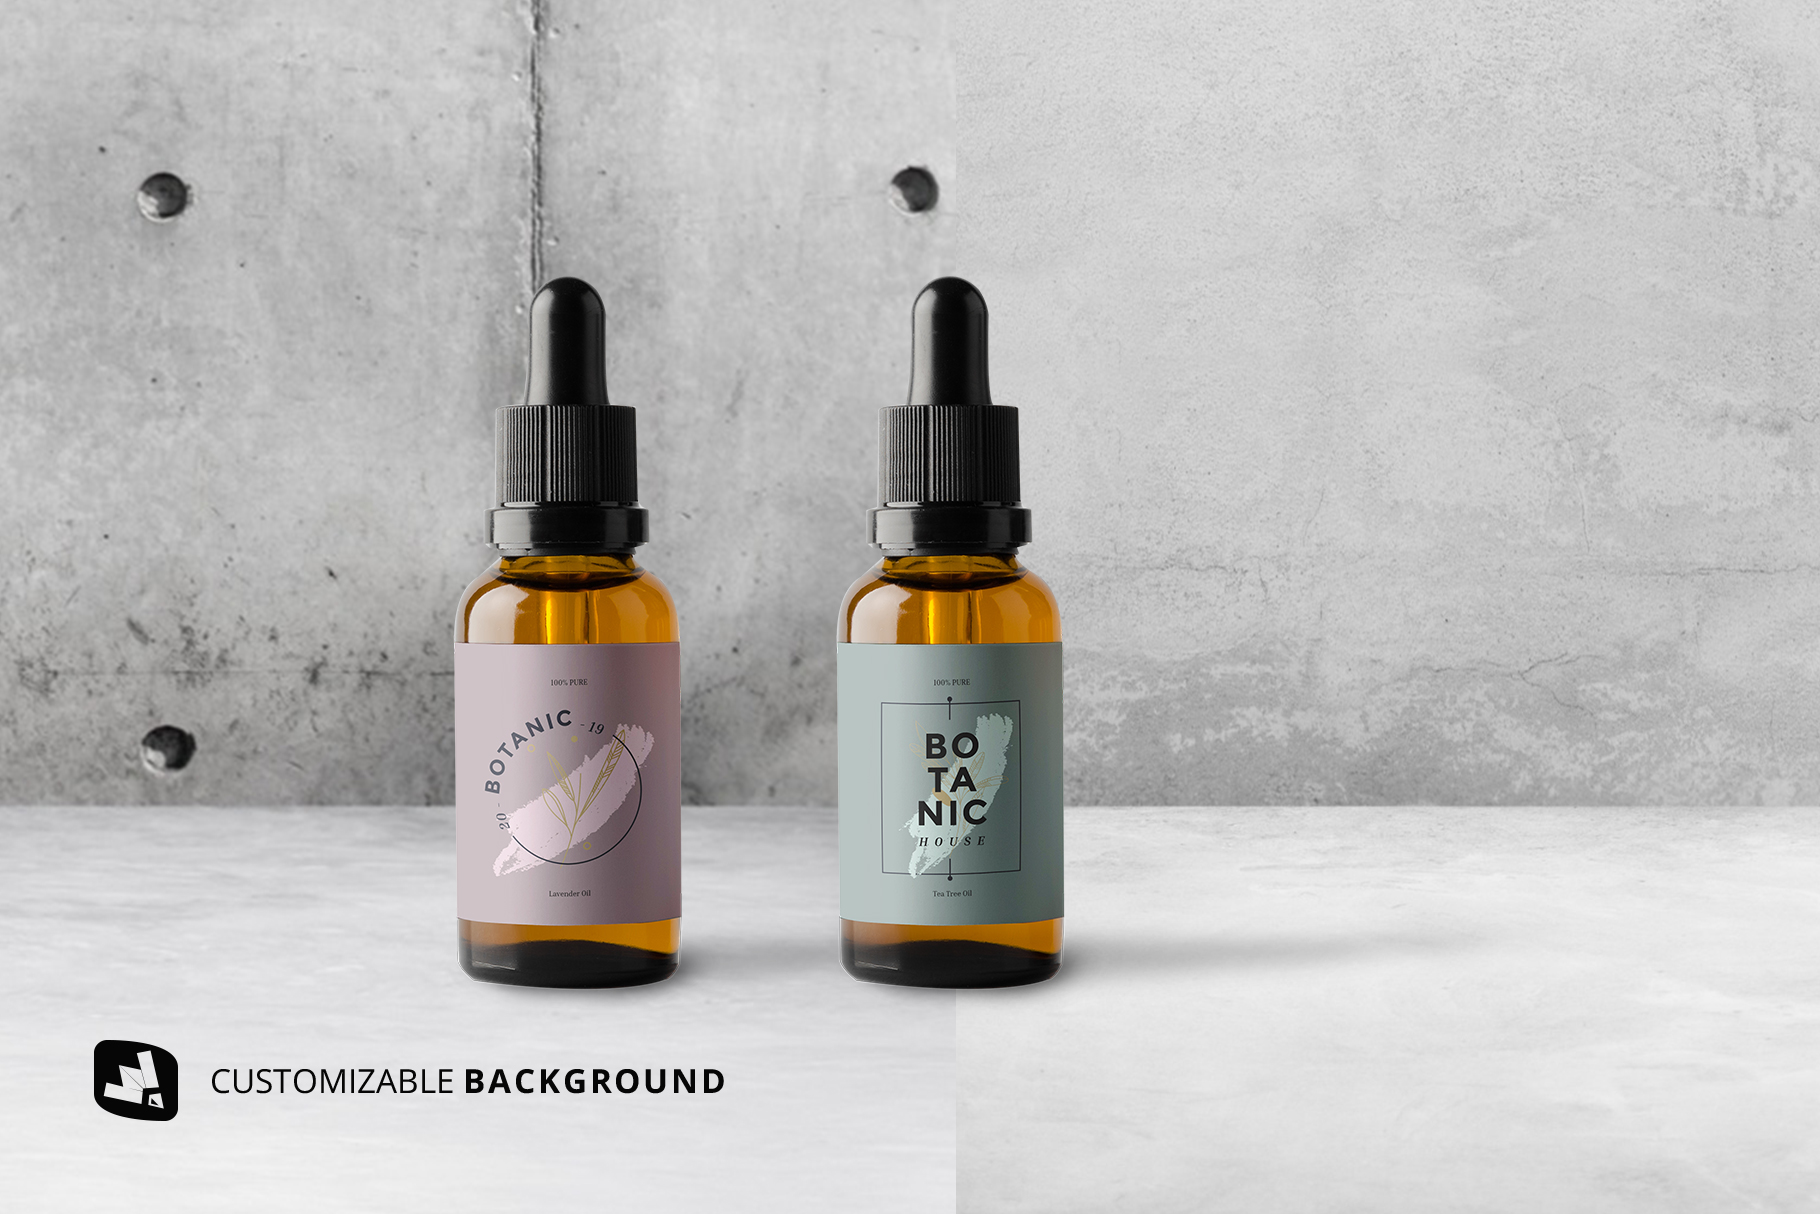 background options of the essential oil bottle packaging mockup